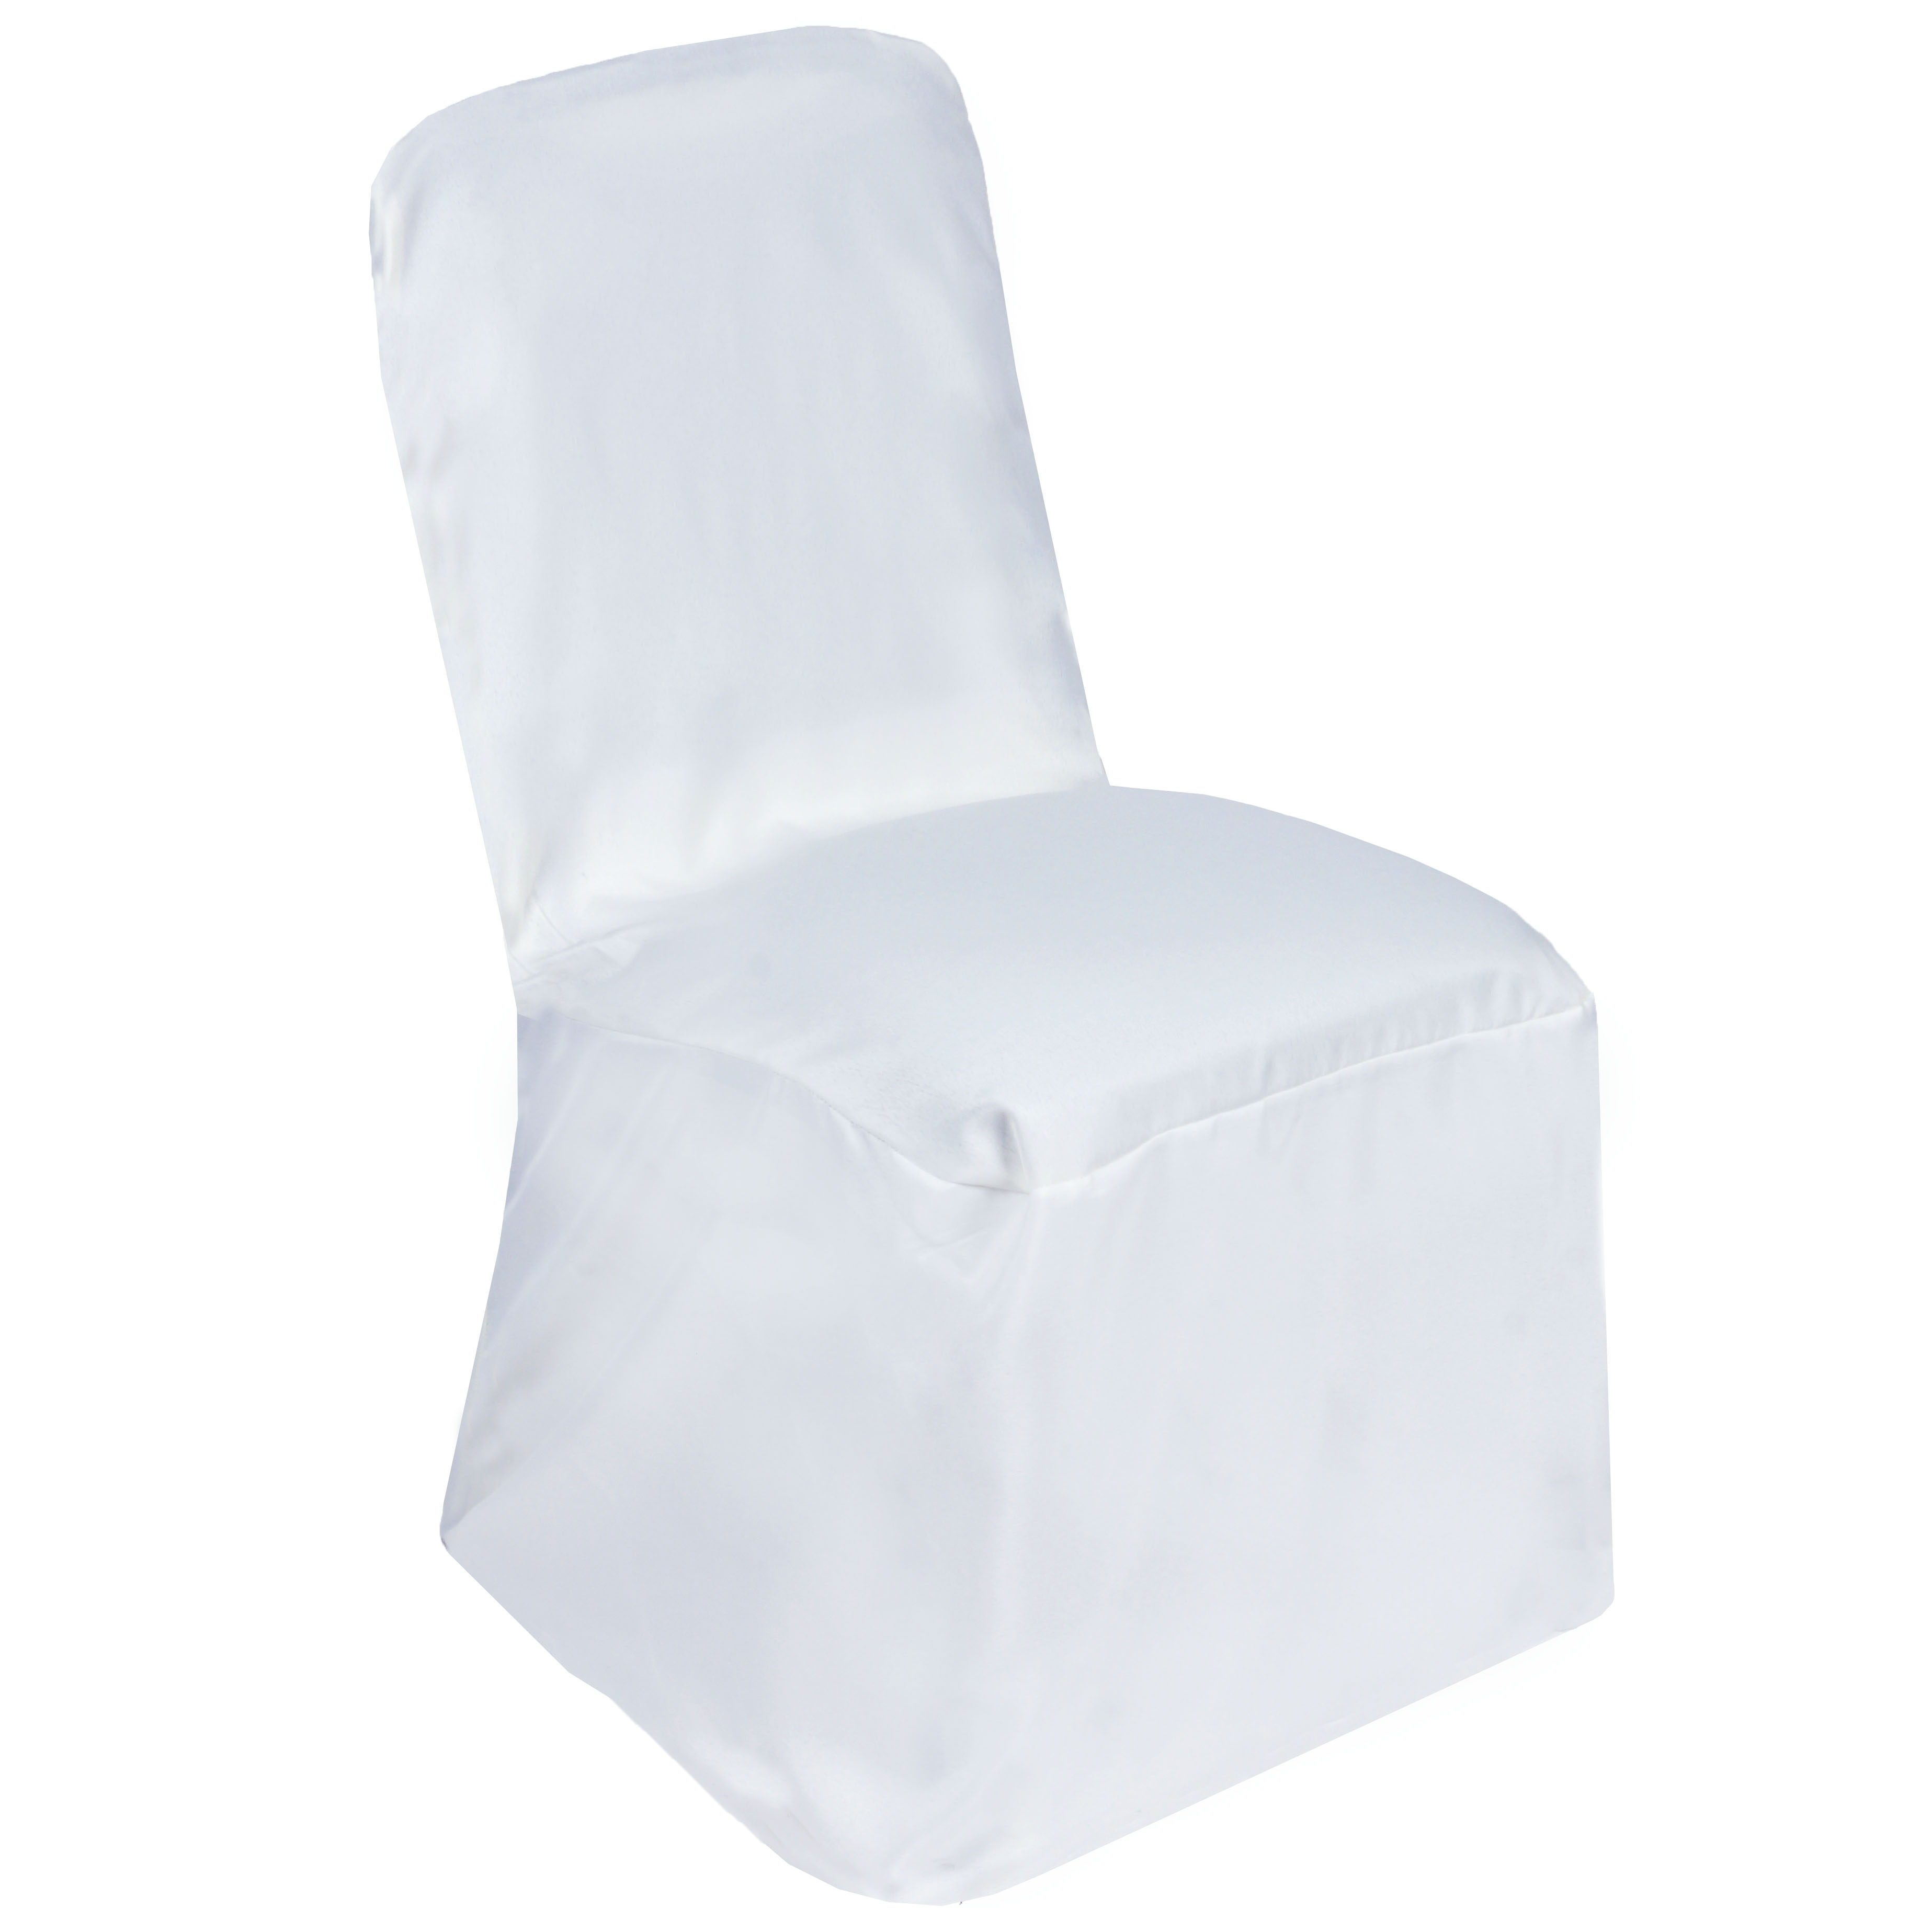 square back chivari chair covers wedding party reception wholesale